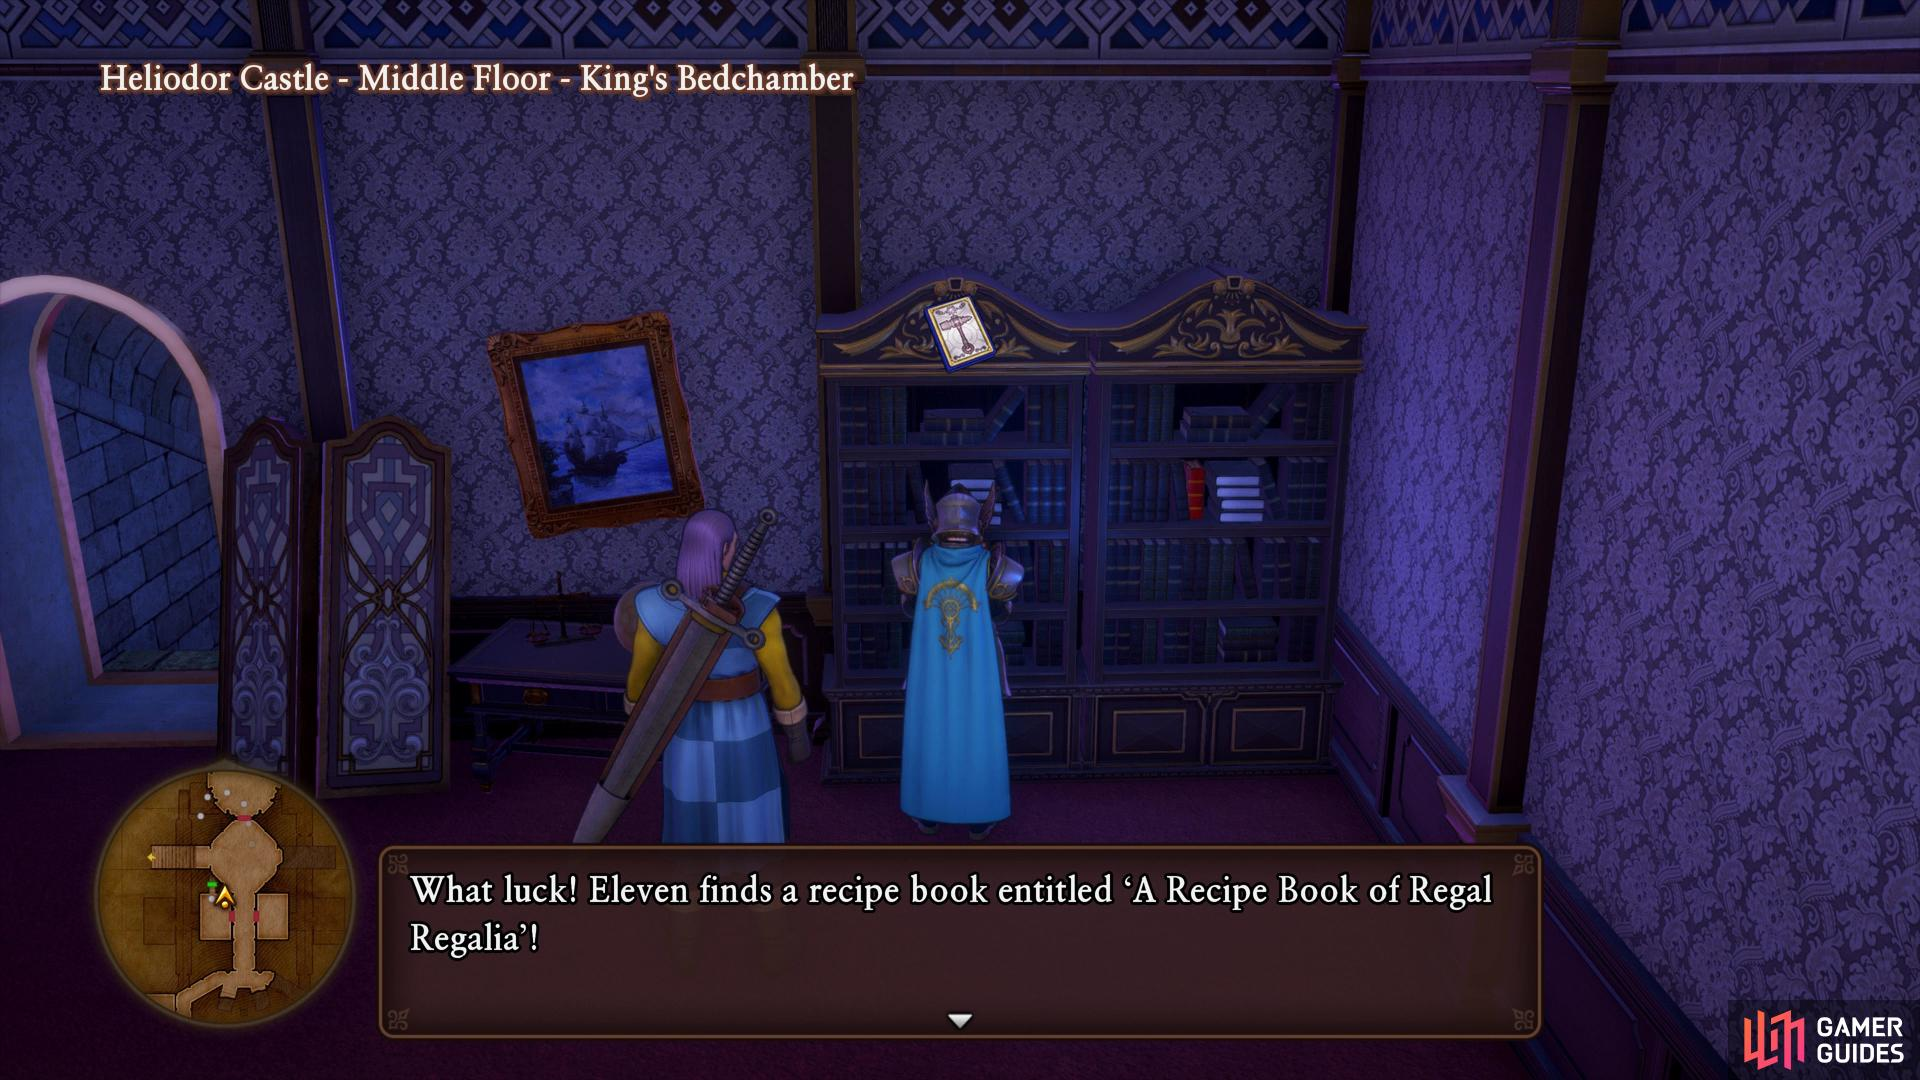 The King's Bedchamber has another bookshelf with a Recipe Book